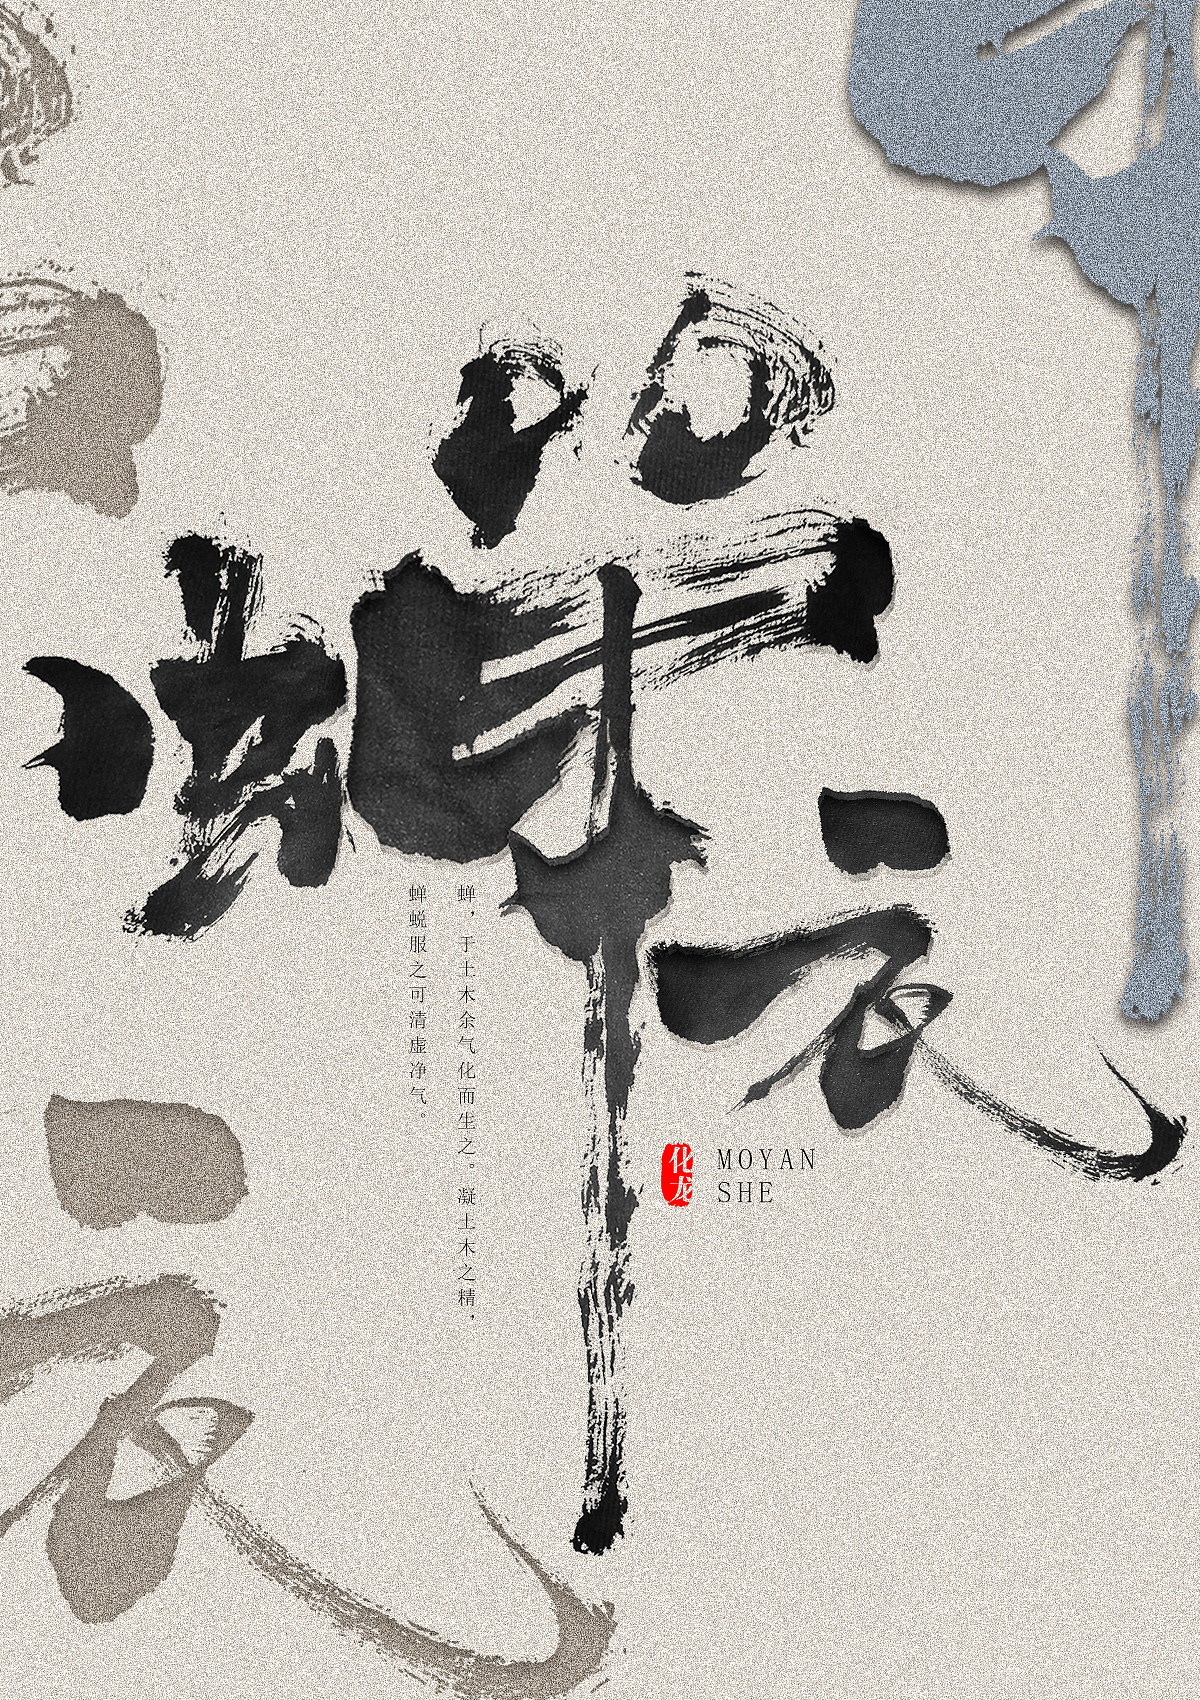 chinesefontdesign.com 2017 12 24 06 58 49 320828 29P Super cool super fashion Chinese calligraphy brush calligraphy design scheme